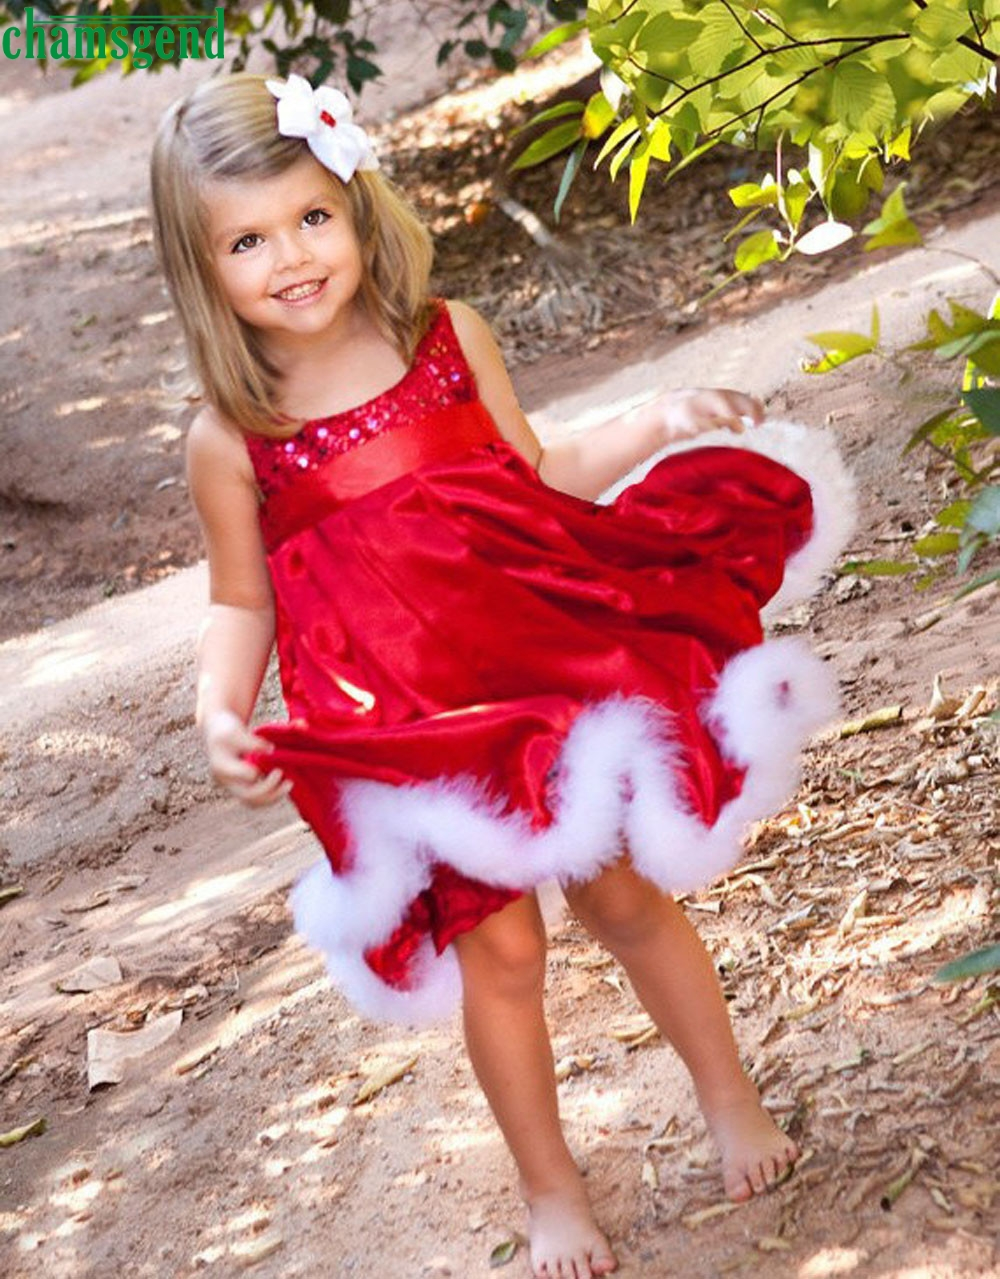 CHAMSGEND drop ship Summer Kids Cute Baby Girls Kids Christmas Party Red Paillette Dresses Xmas Gift Feb7 S35(China (Mainland))